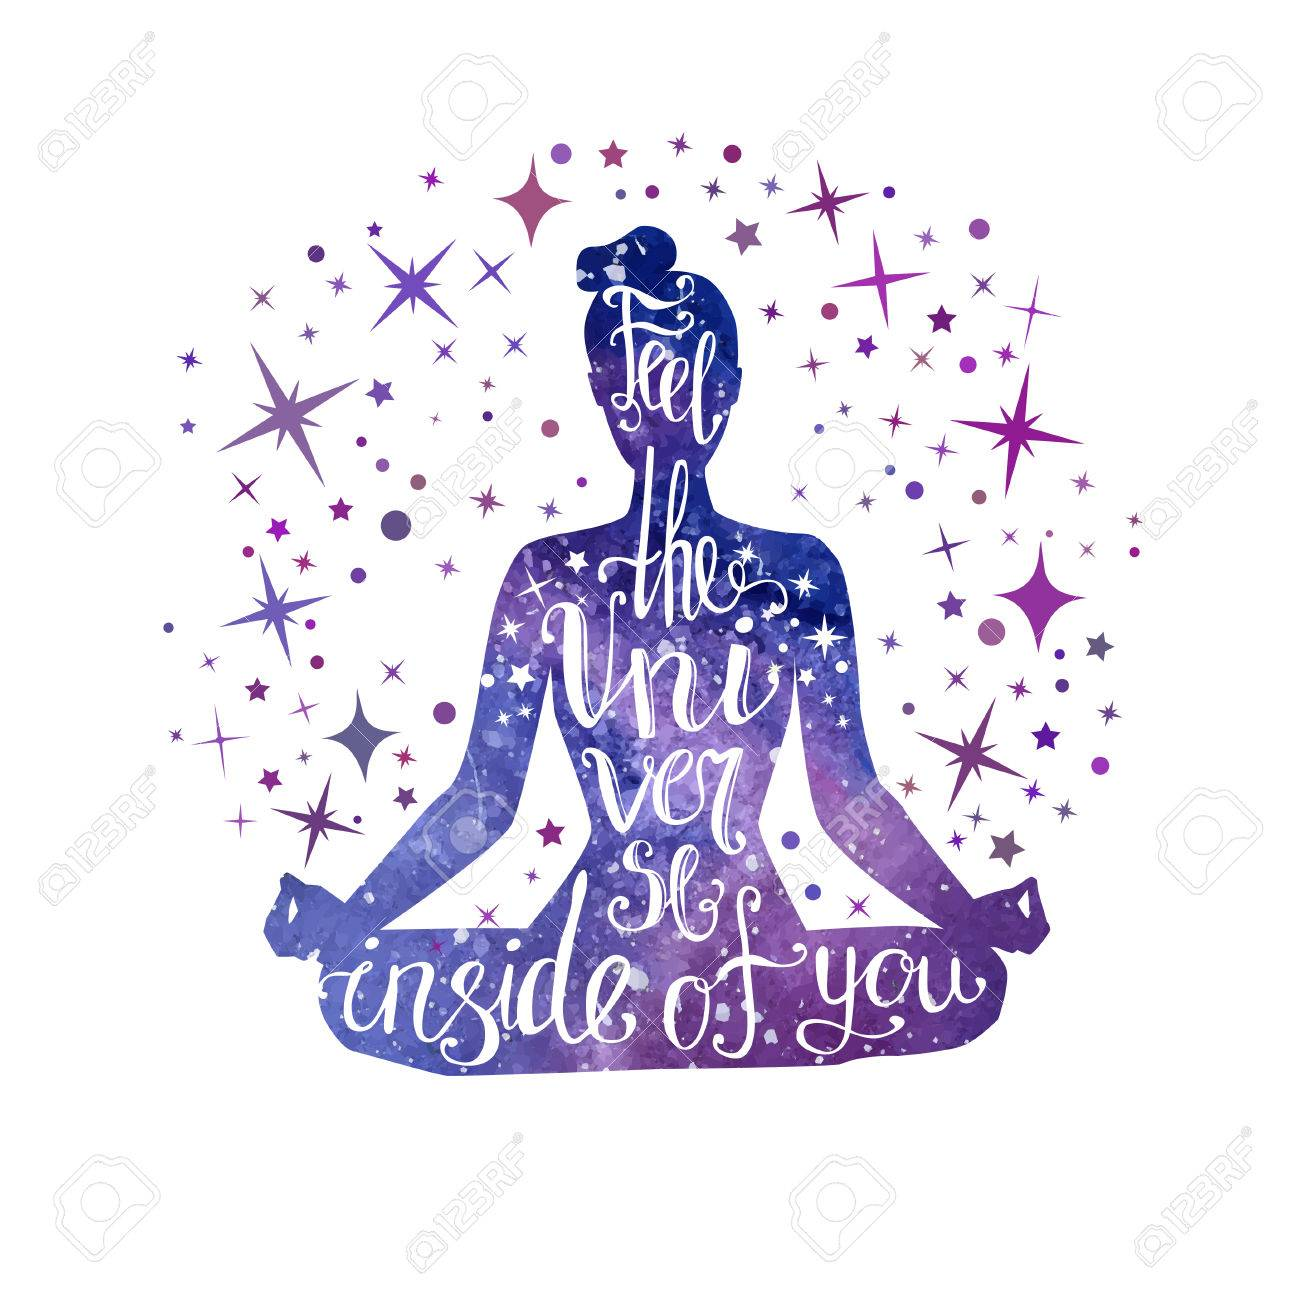 Feel the Universe inside of you. Vector illustration with meditating woman and hand written phrase. - 86387425